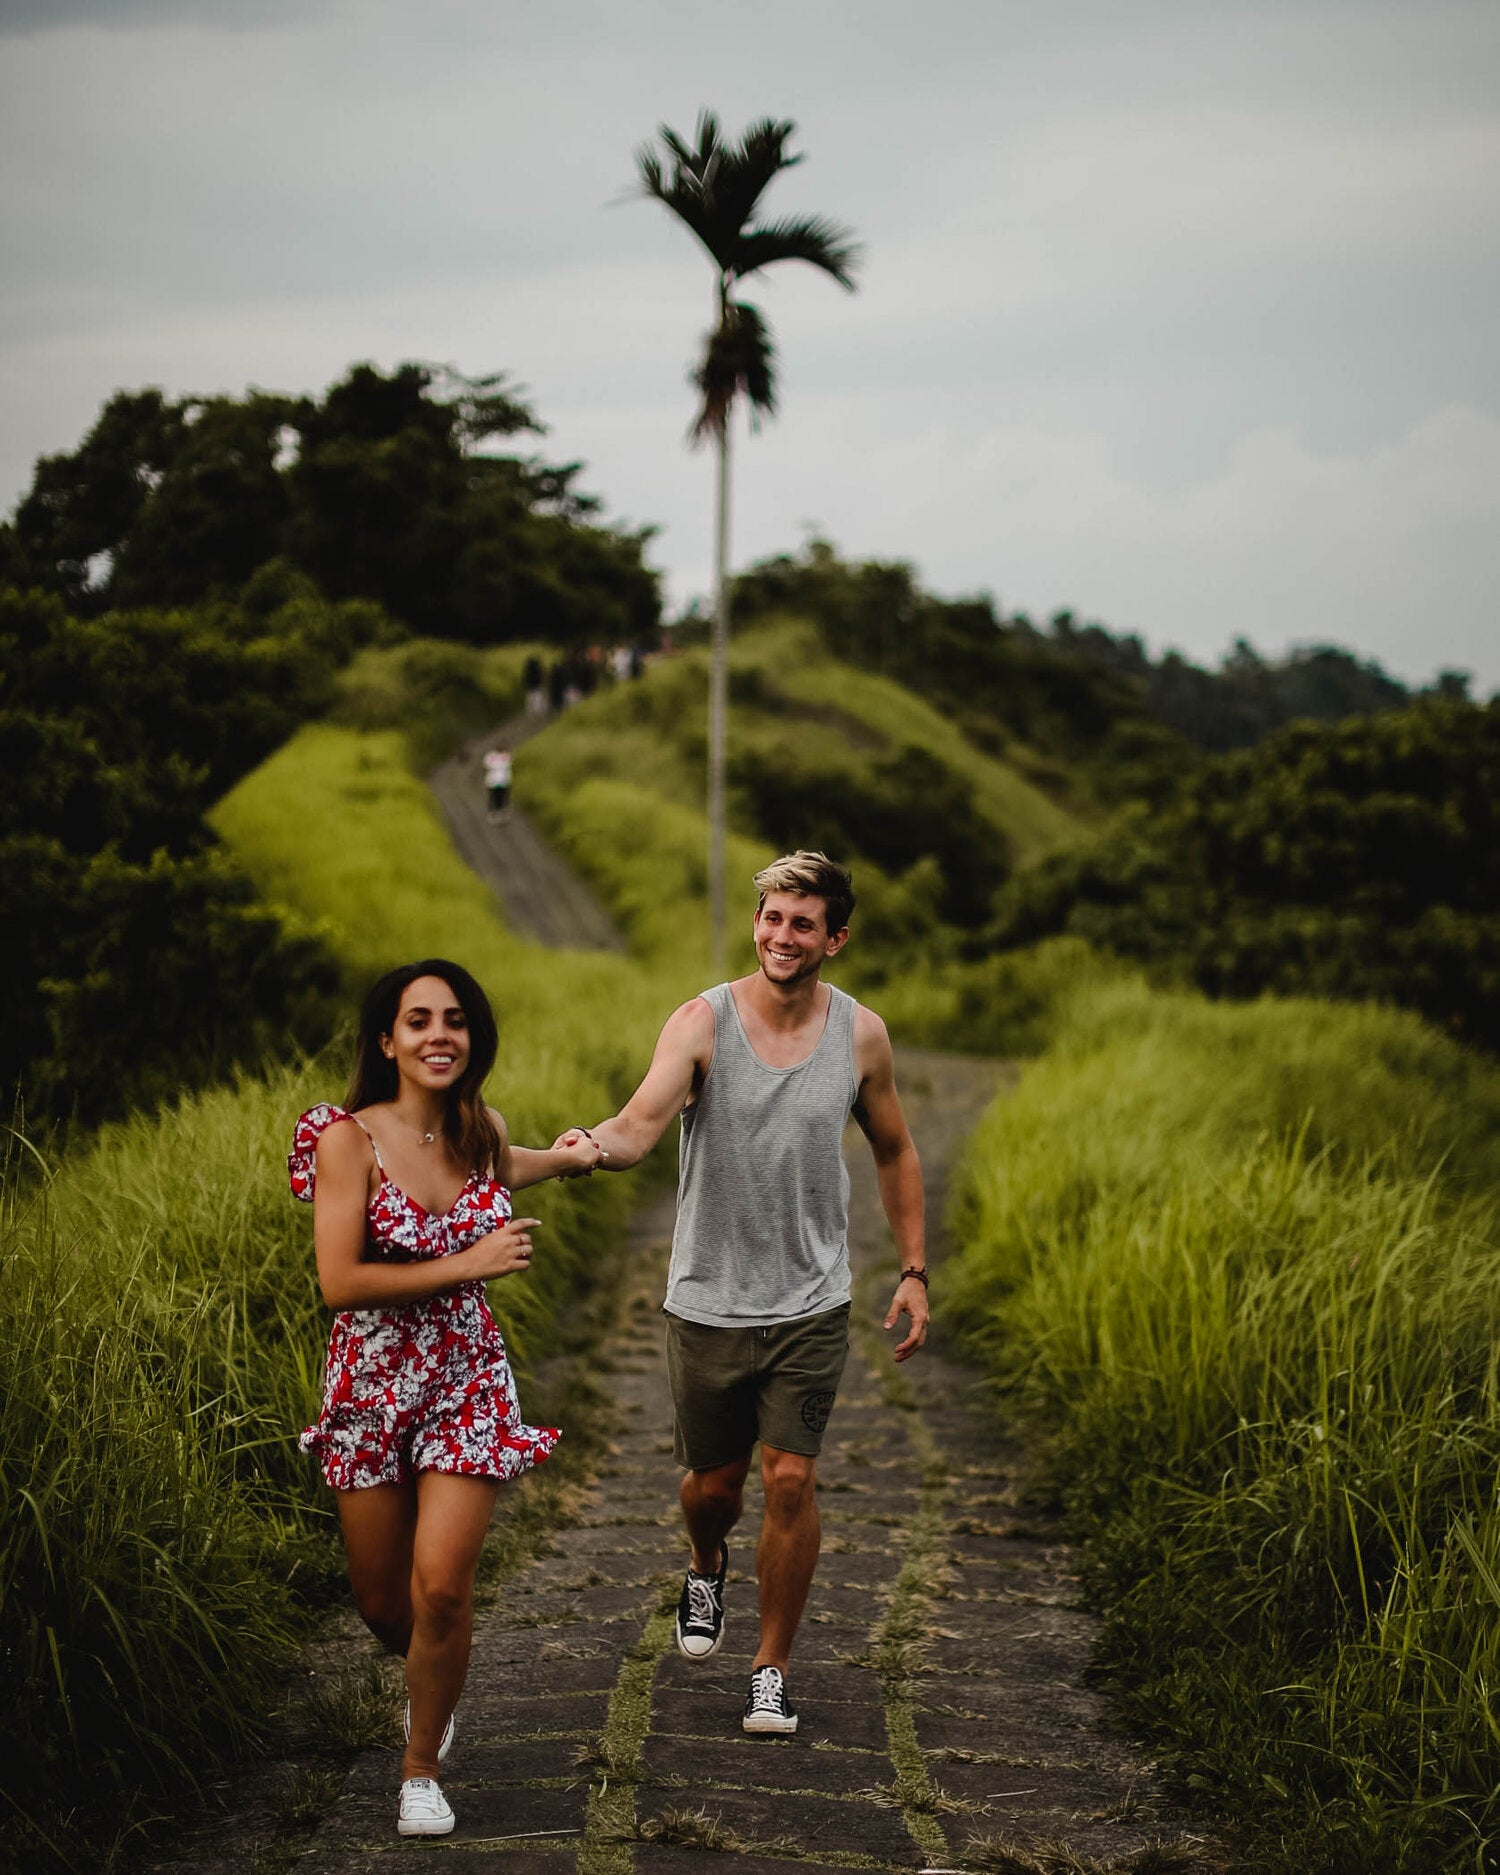 Lost LeBlanc and What The Chic at the Campuhan Ridge Walk in Ubud, Bali